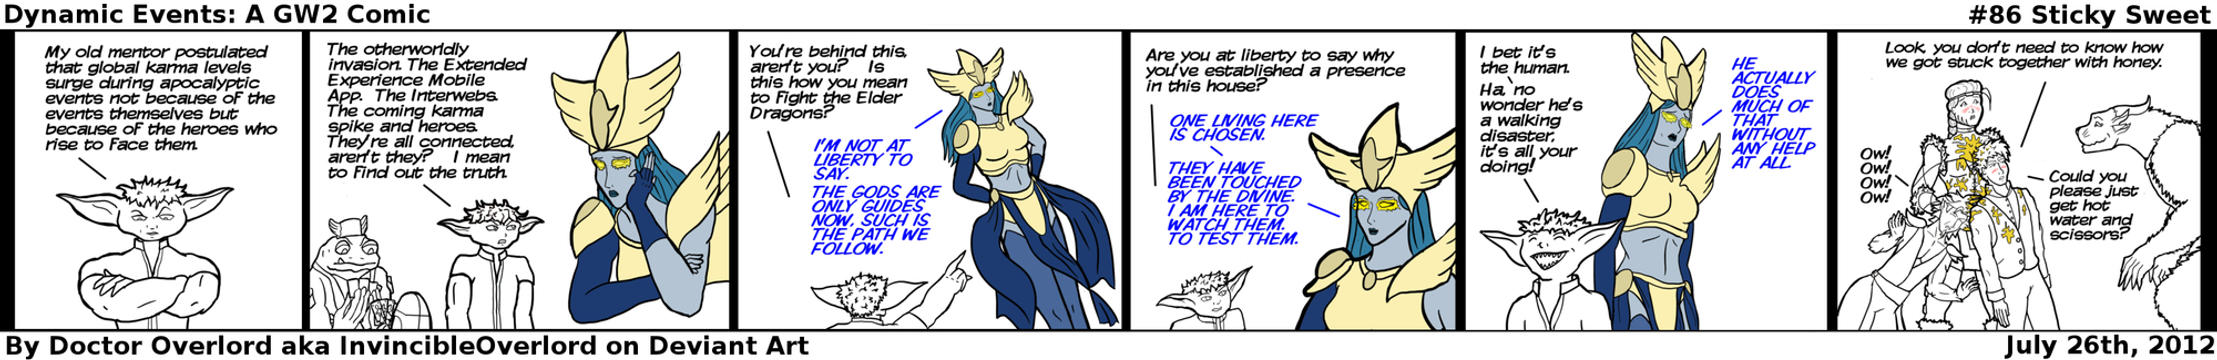 Dynamic Events: A Guild Wars 2 comic #86 by DoctorOverlord